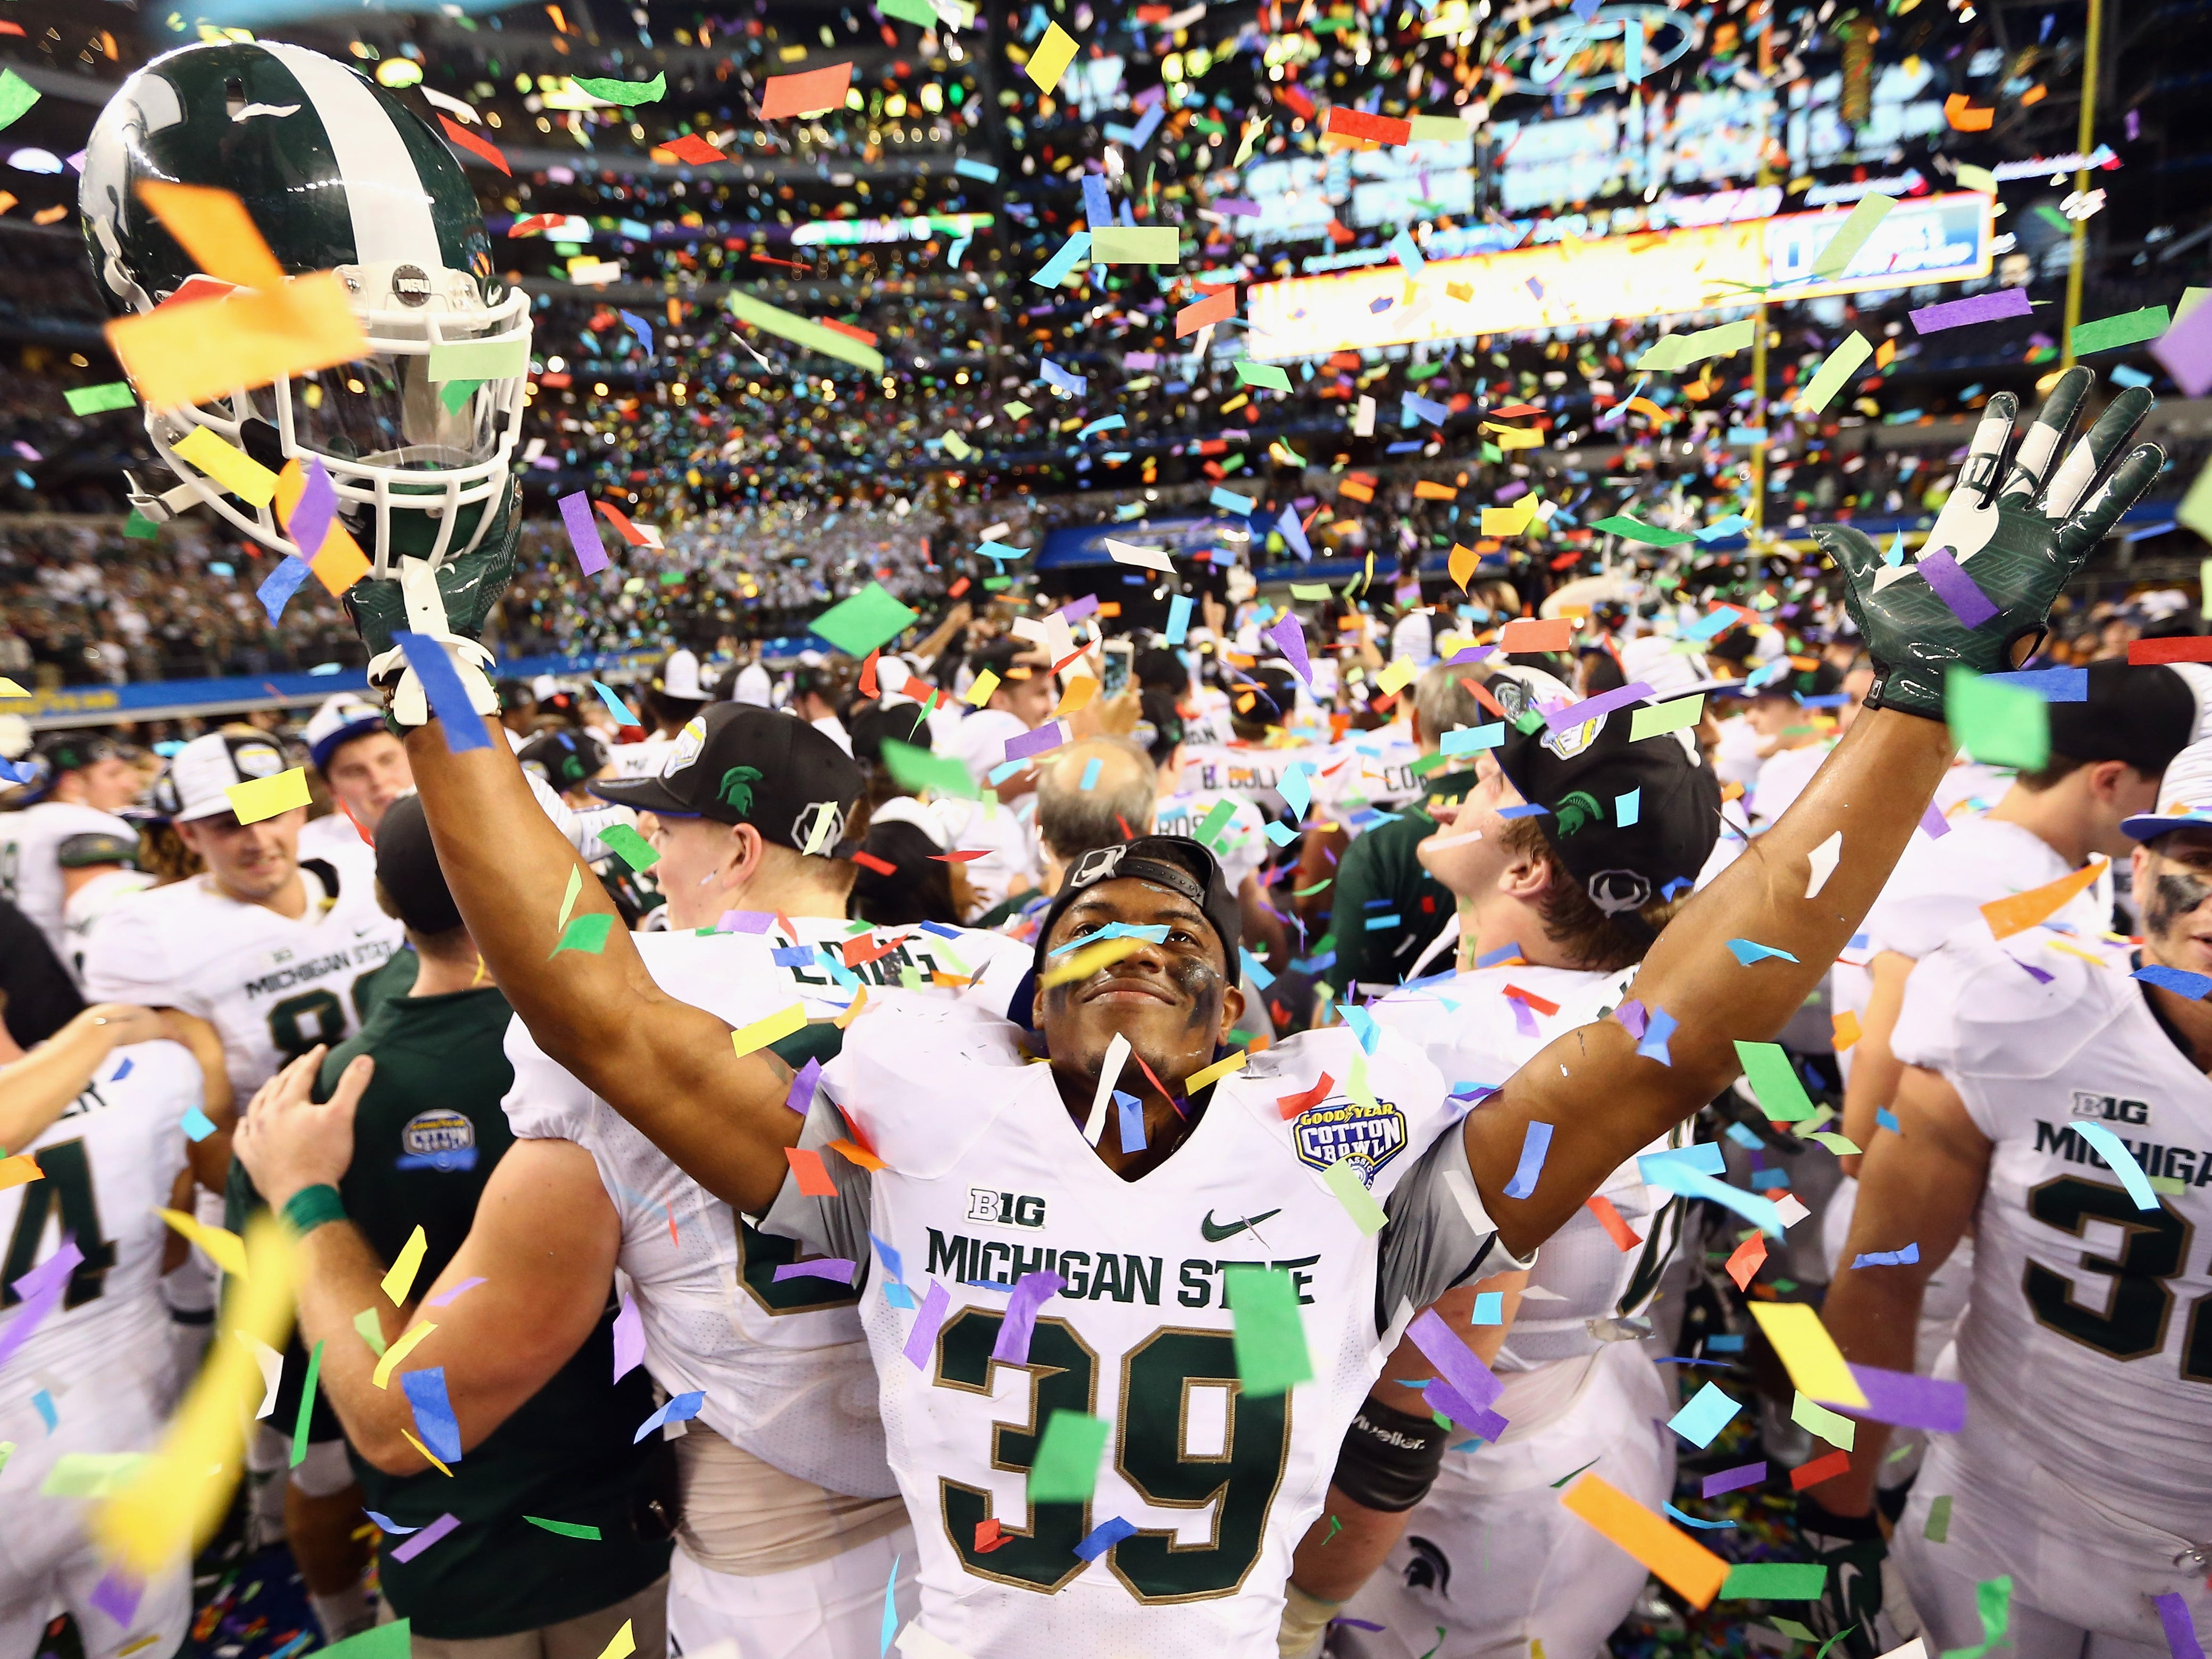 Jan. 1, 2015: No. 7 Michigan State 42, No. 4 Baylor 41 (Cotton Bowl): Jermaine Edmondson leads the celebration after the comeback victory.